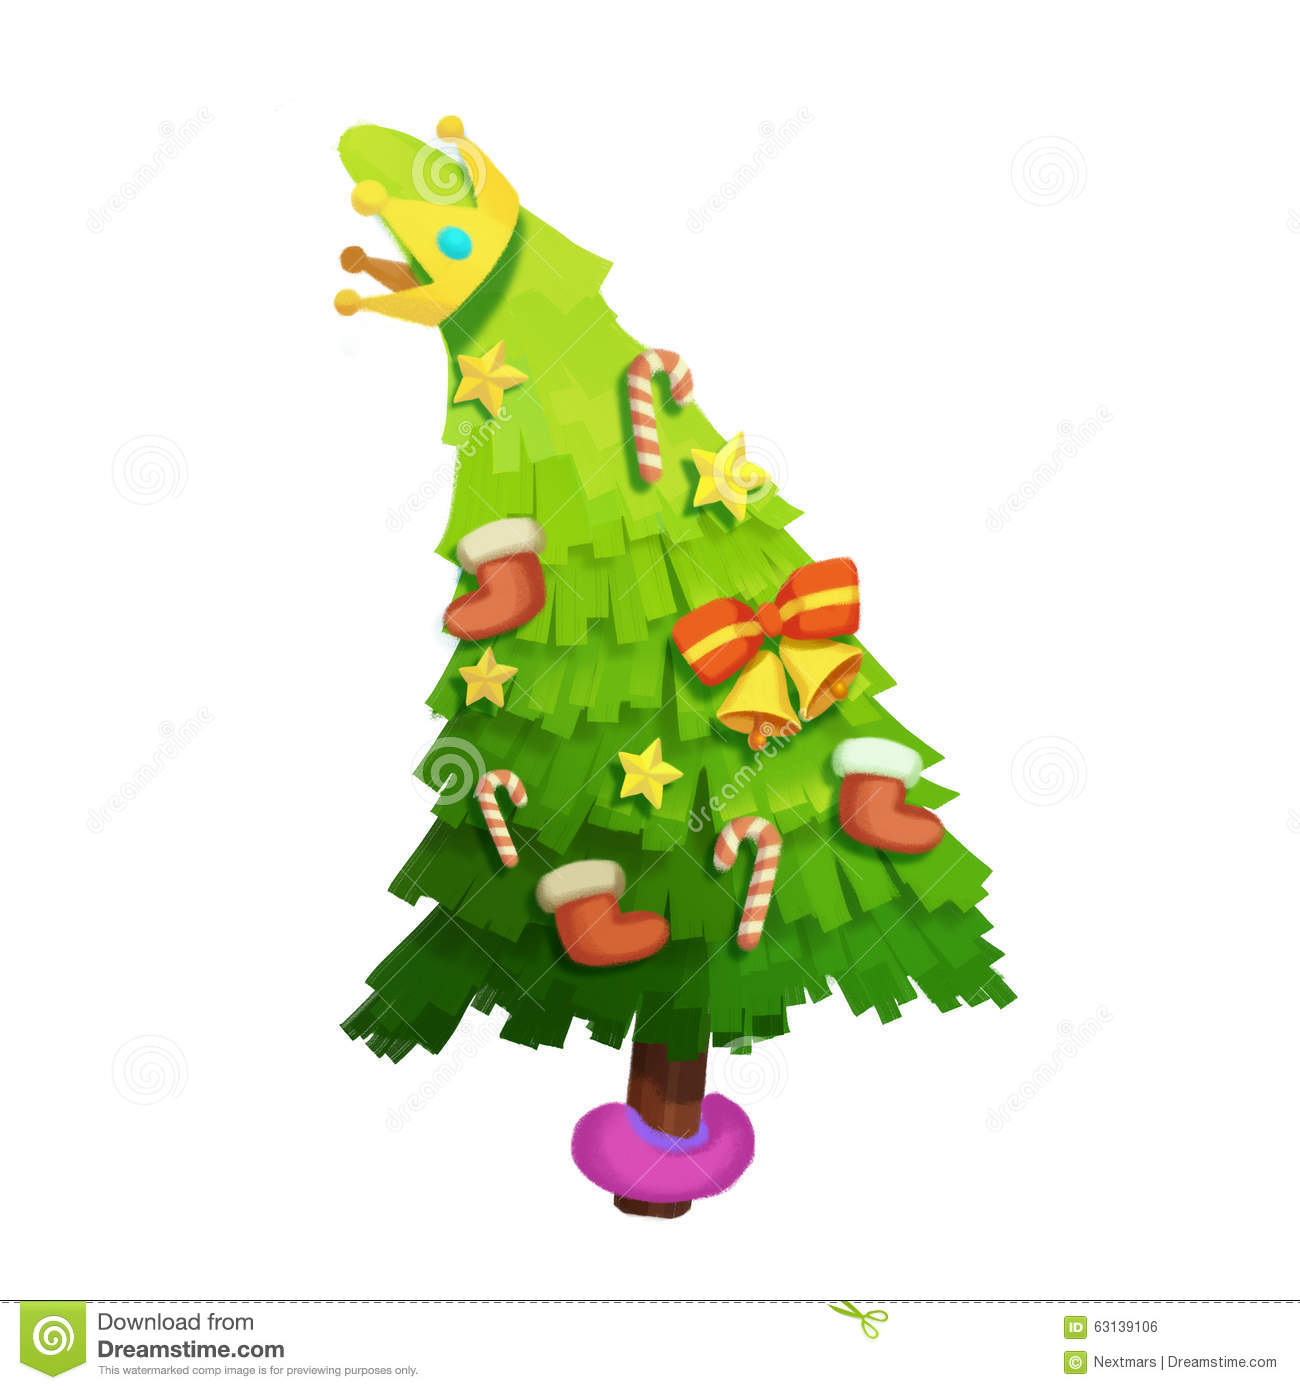 Illustration The Christmas Tree Wishes You Merry Christmas Stock Illustration Illustration Of Background Collage 63139106 These alpine trees look more like cartoon versions than precise replicas of the real thing—and we mean. dreamstime com